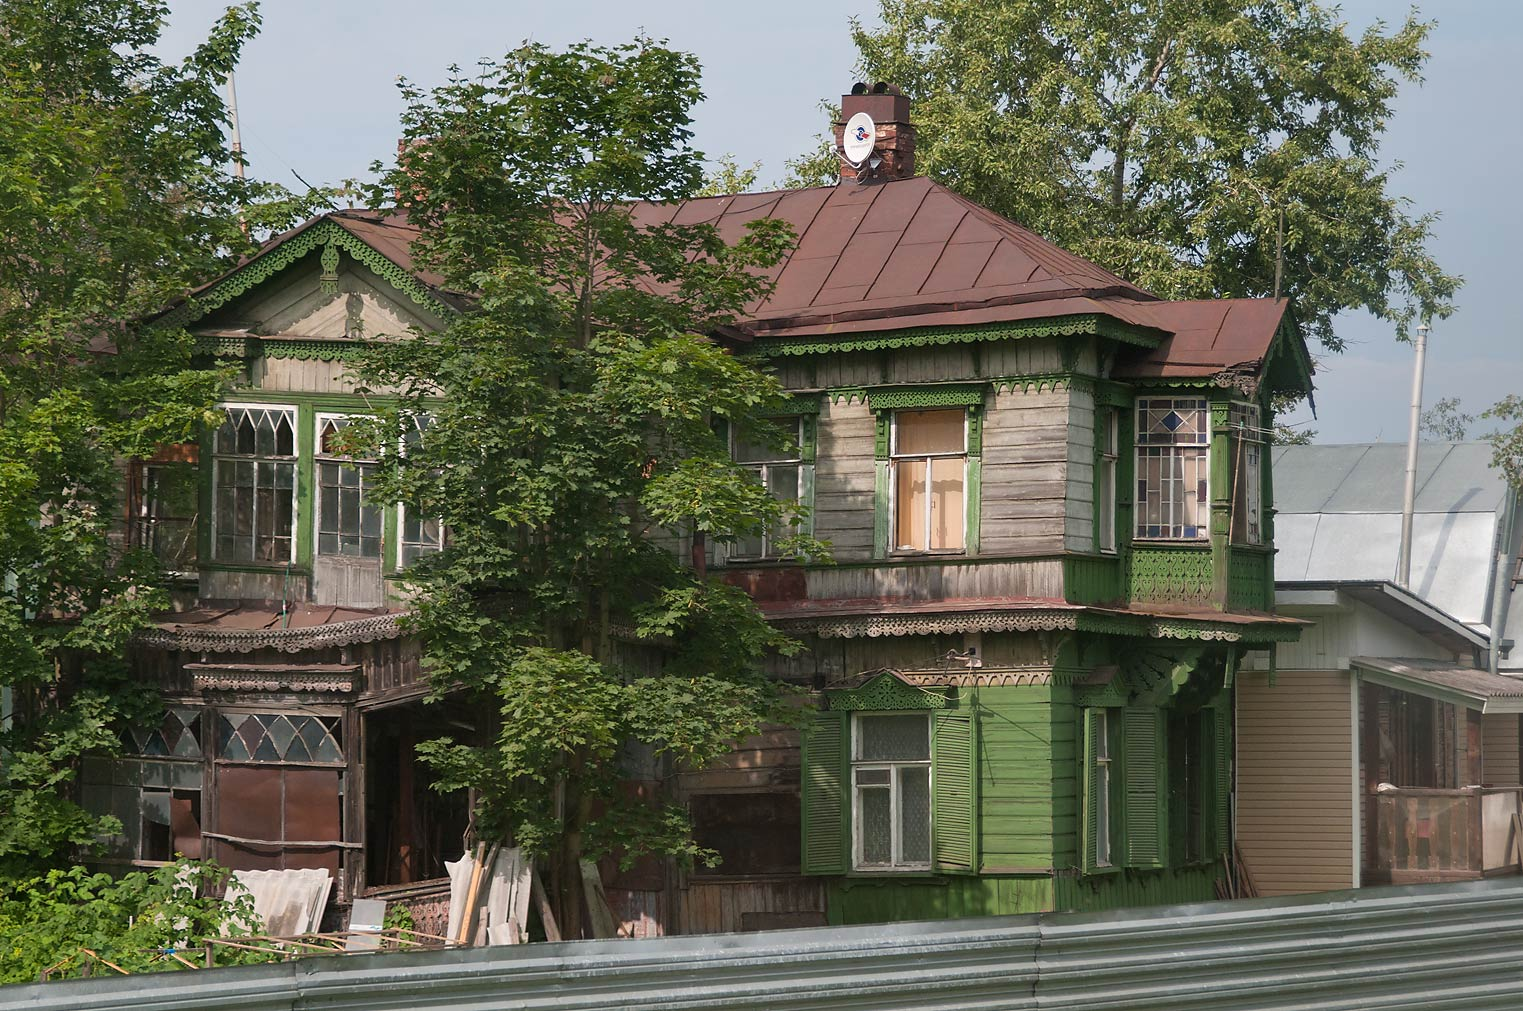 Wooden house in Ozerki, view from a window of a train. St.Petersburg, Russia